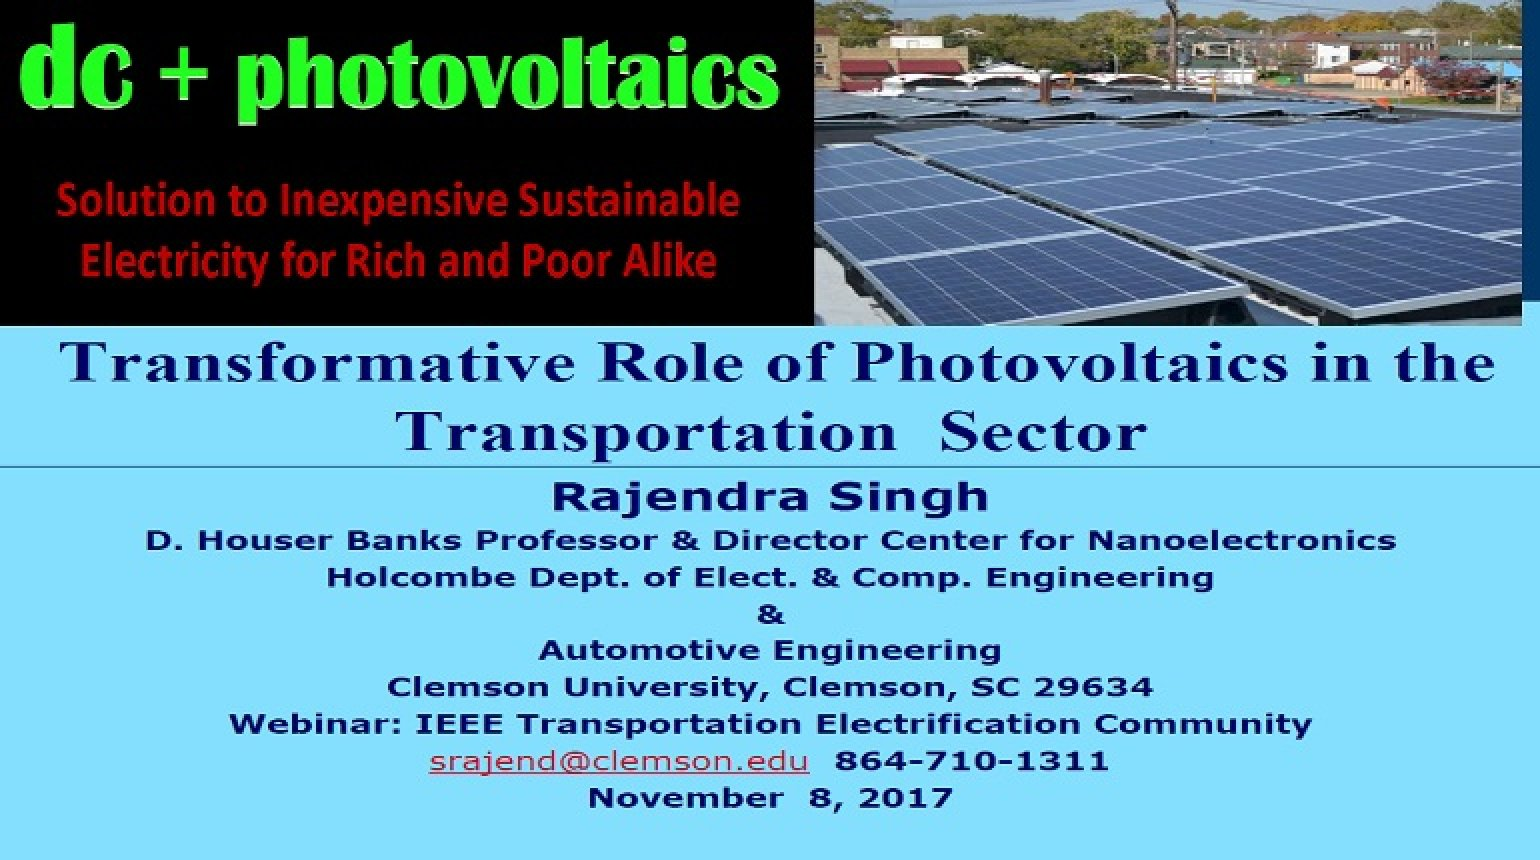 Video - Transformative Role of Photovoltaics in the Transportation Sector